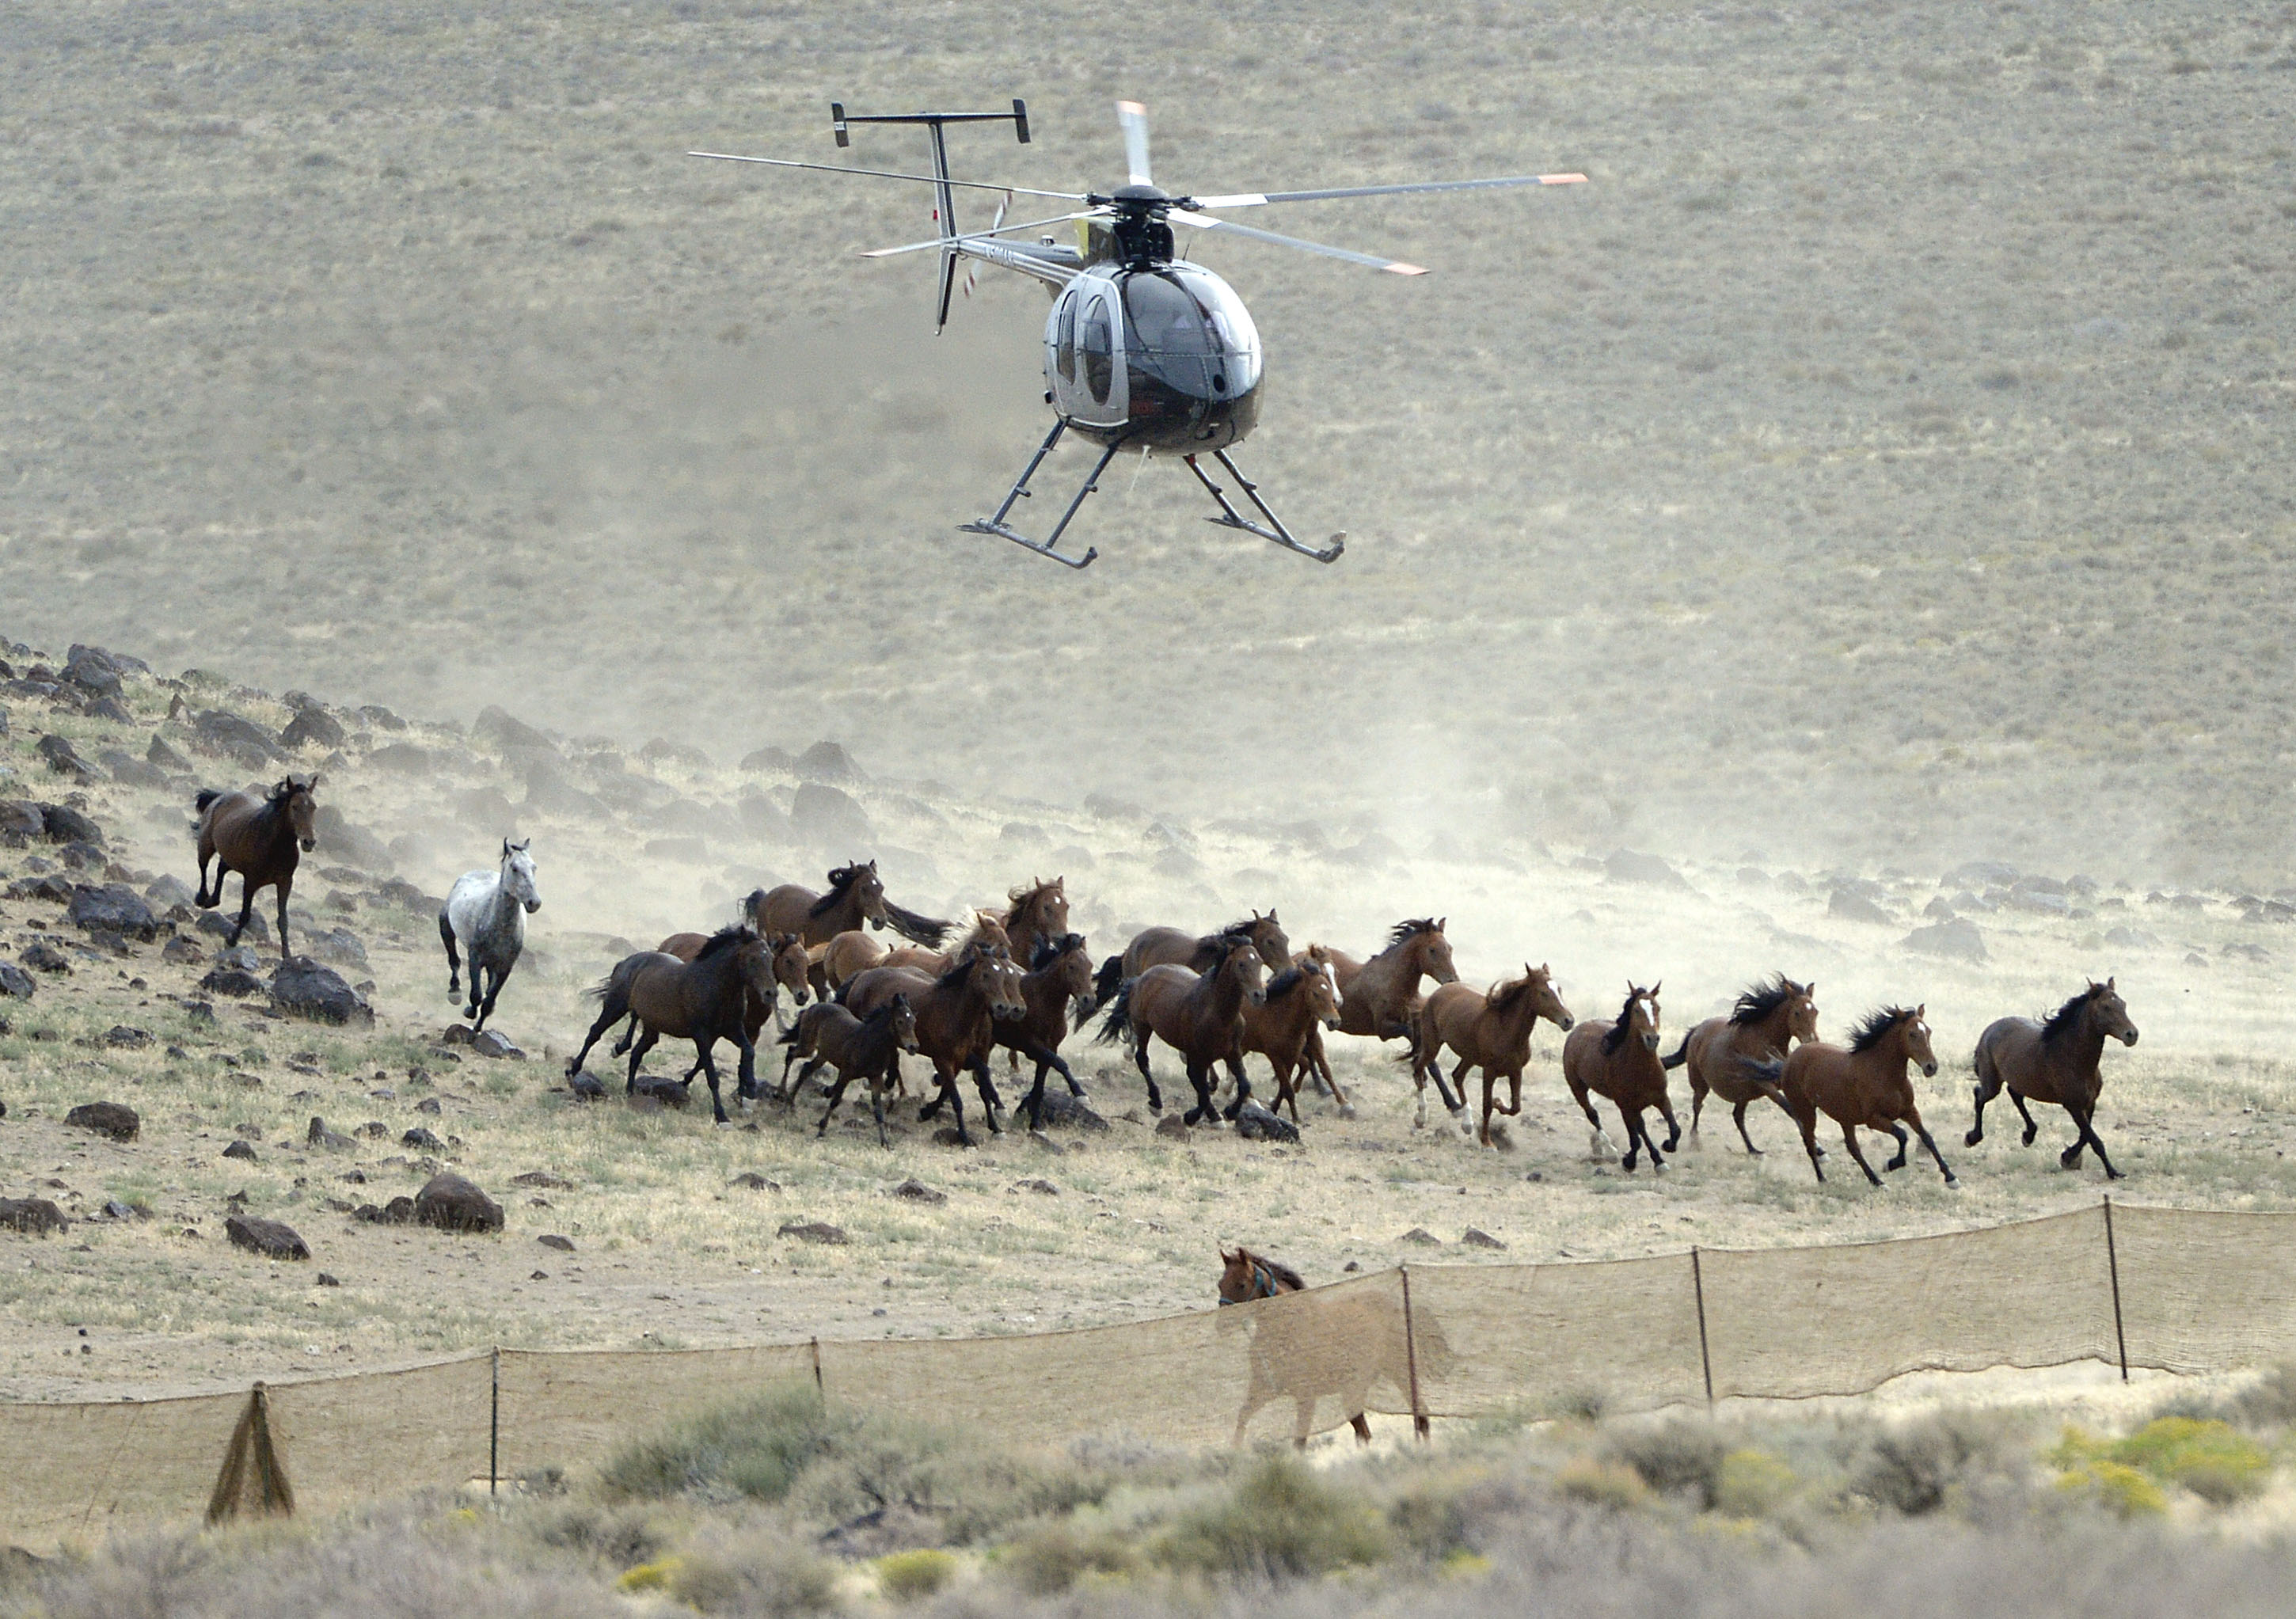 (Al Hartmann  |  Tribune file photo)   The BLM used helicopters to steer wild horses into holding pens last July in an effort to remove the animals from state trust lands at Blawn Wash, about 35 miles southwest of Milford.